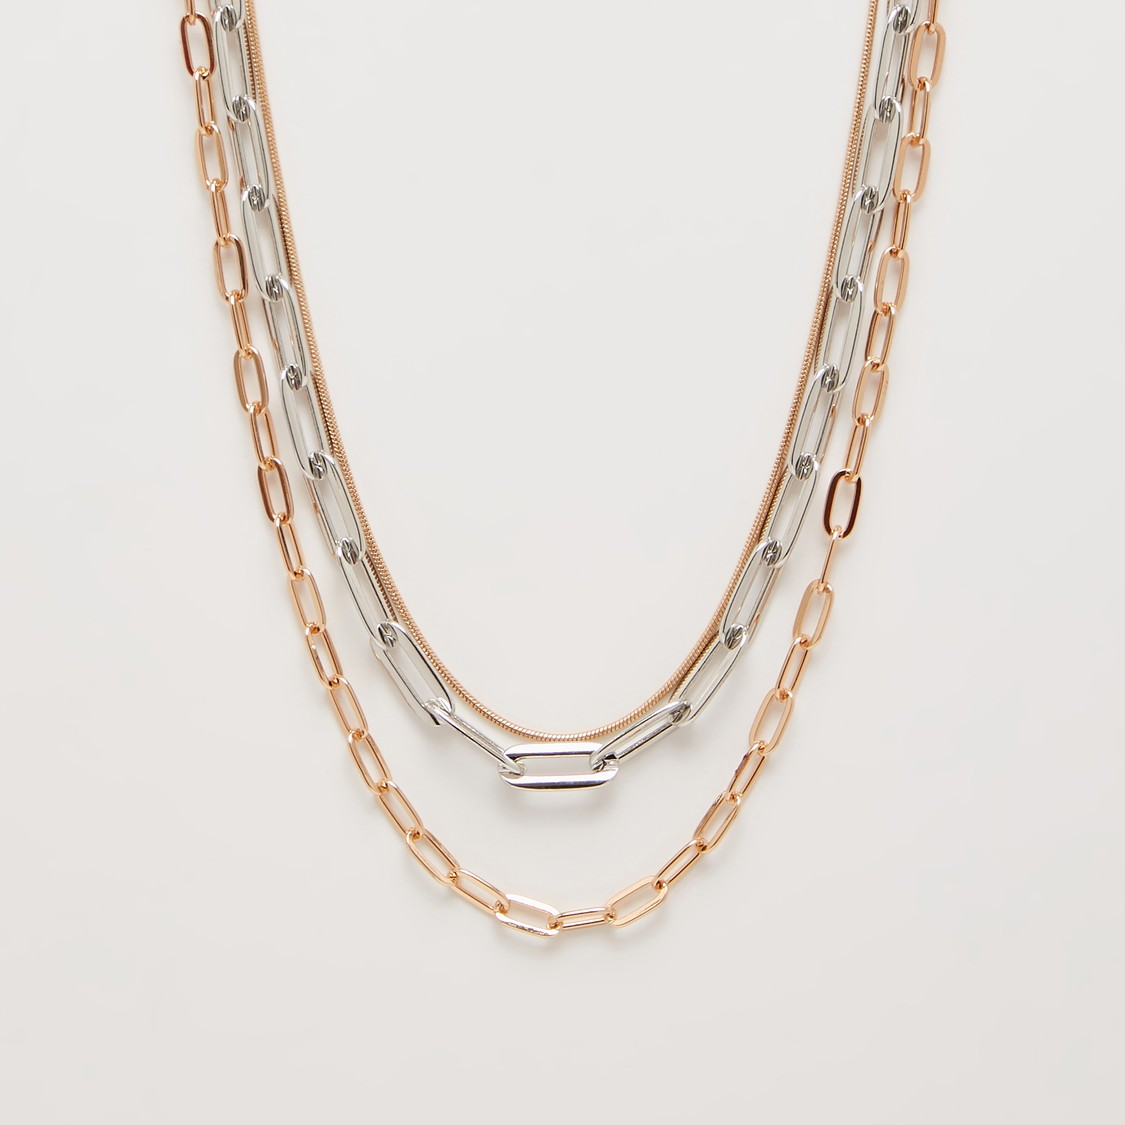 Metallic Multi-Layer Necklace with Lobster Clasp